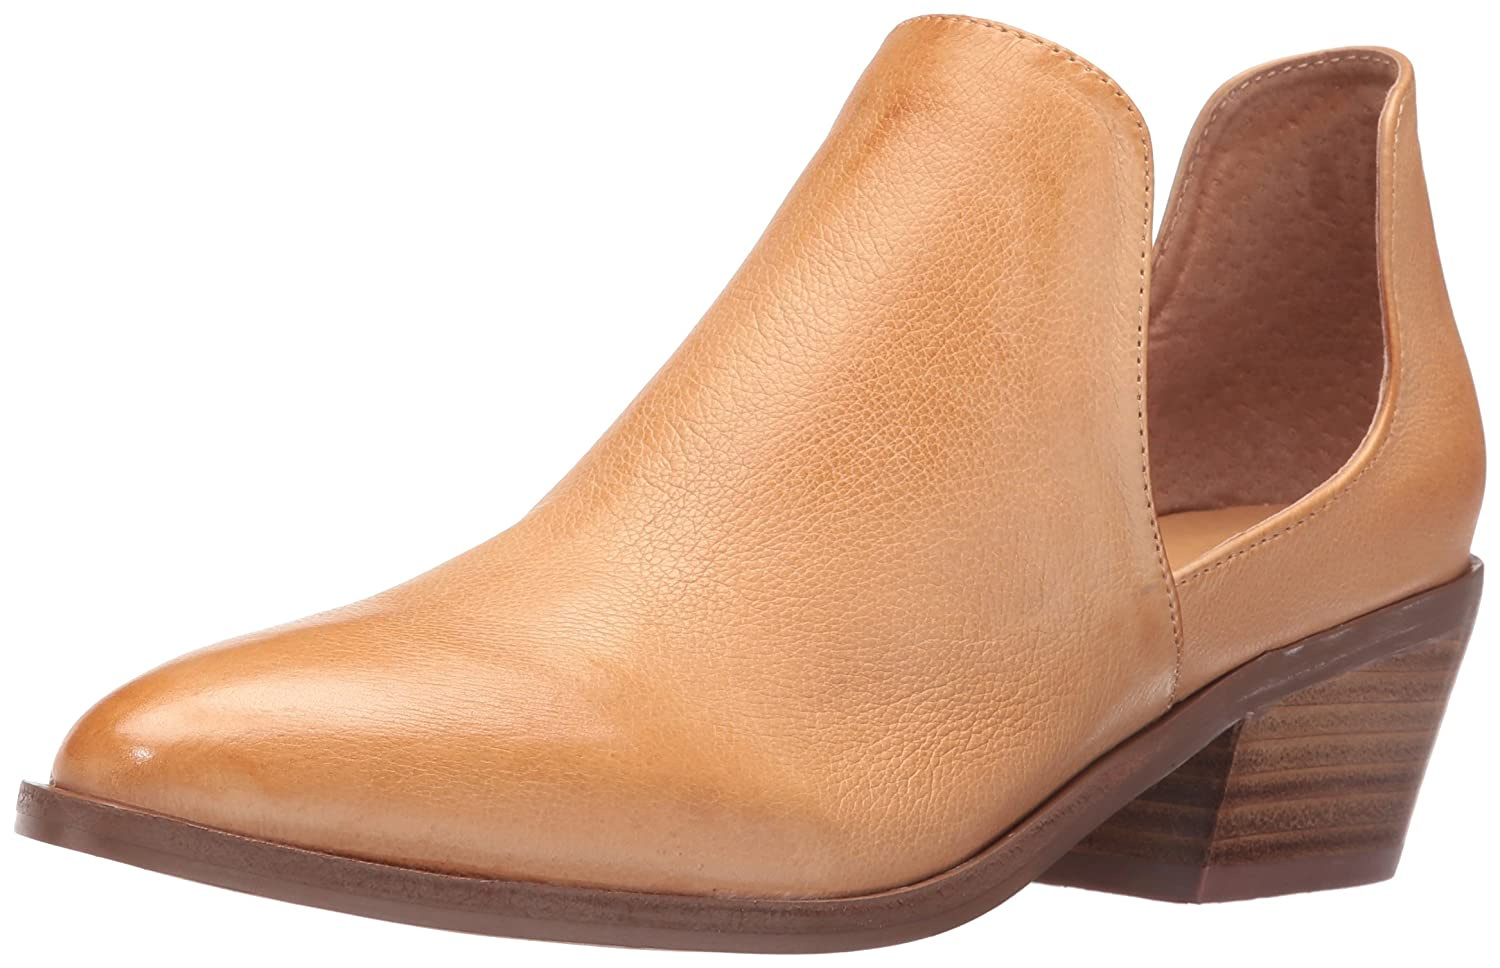 Chinese Laundry Women's Focus Ankle Bootie B01K6NI7PK 7.5 B(M) US|Natural Leather